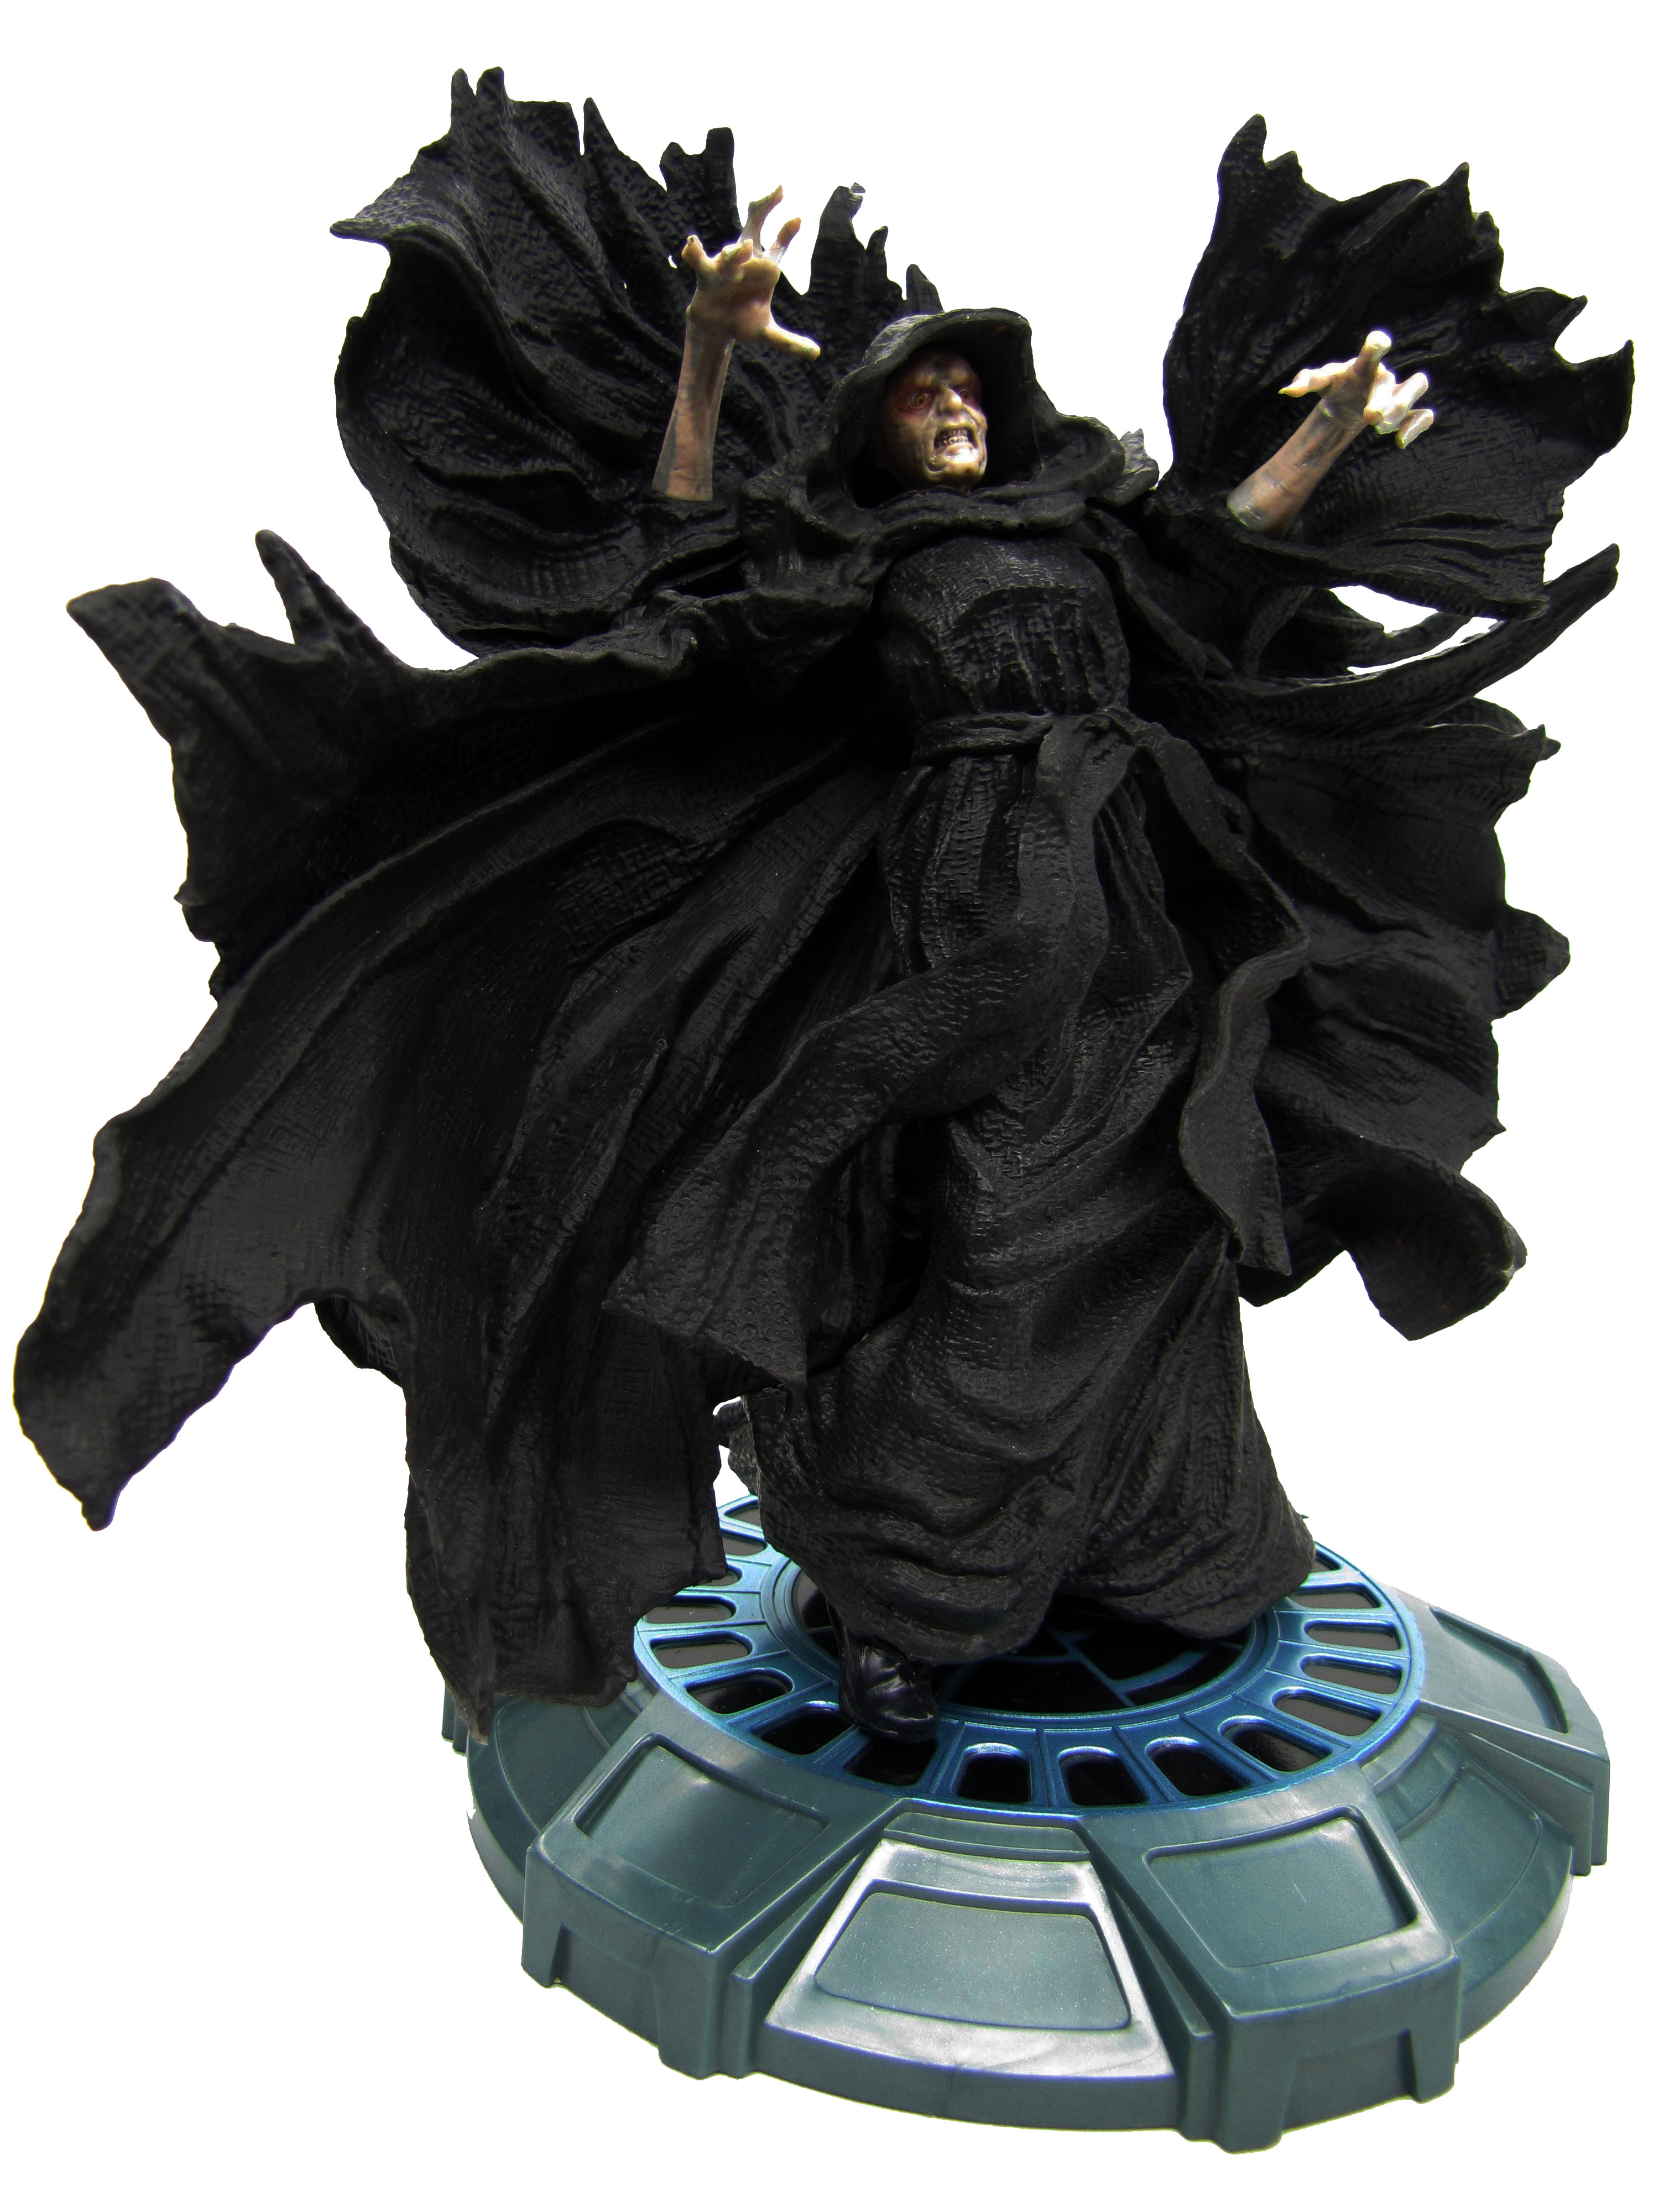 2003 Star Wars Unleashed DARTH SIDIOUS Complete